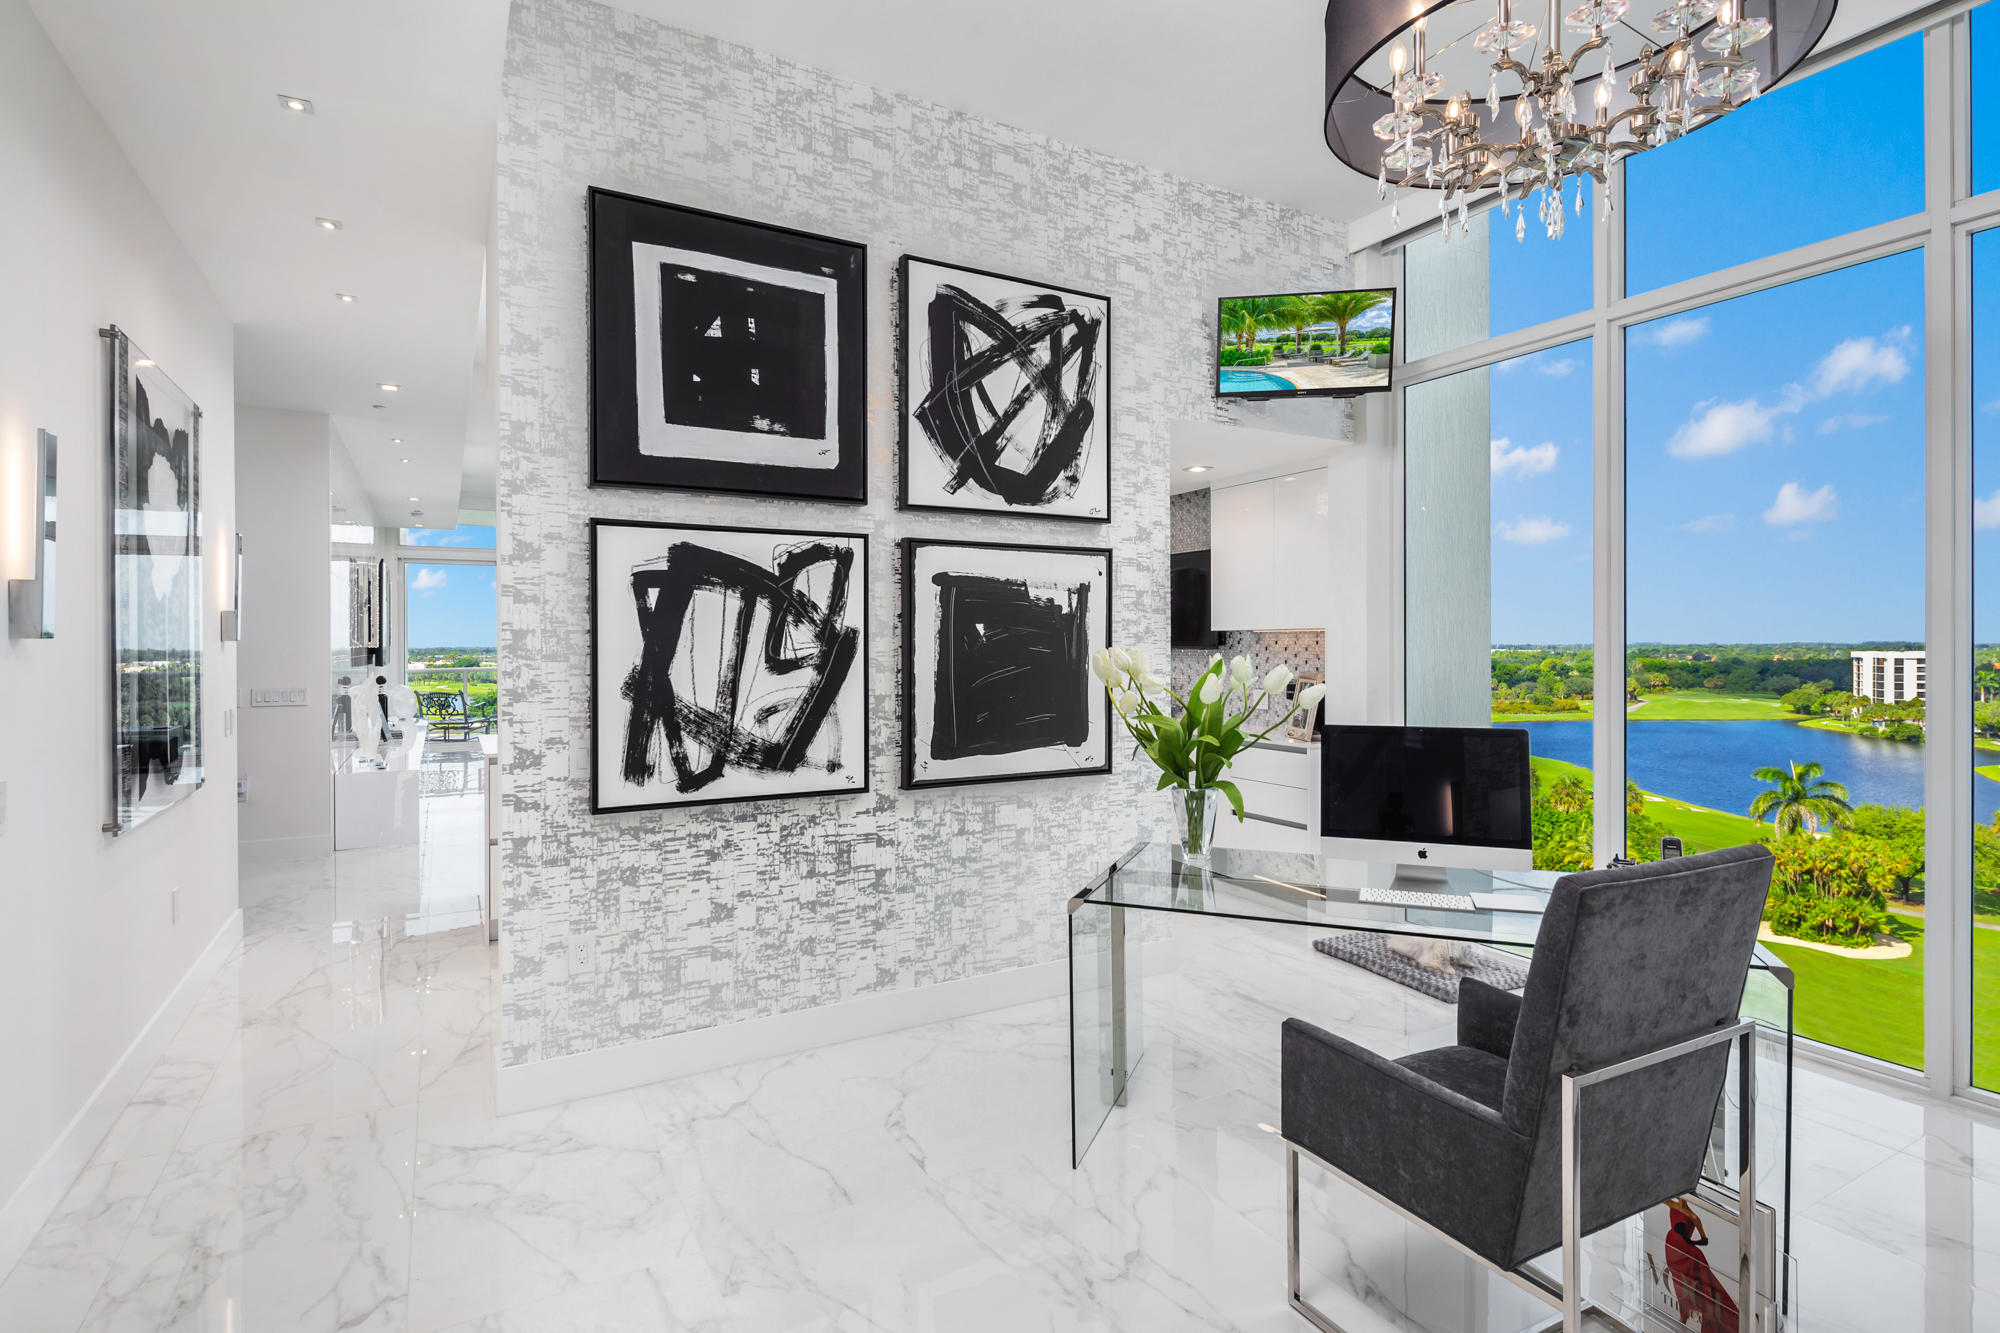 Home for sale in Akoya Boca West Country Club Boca Raton Florida